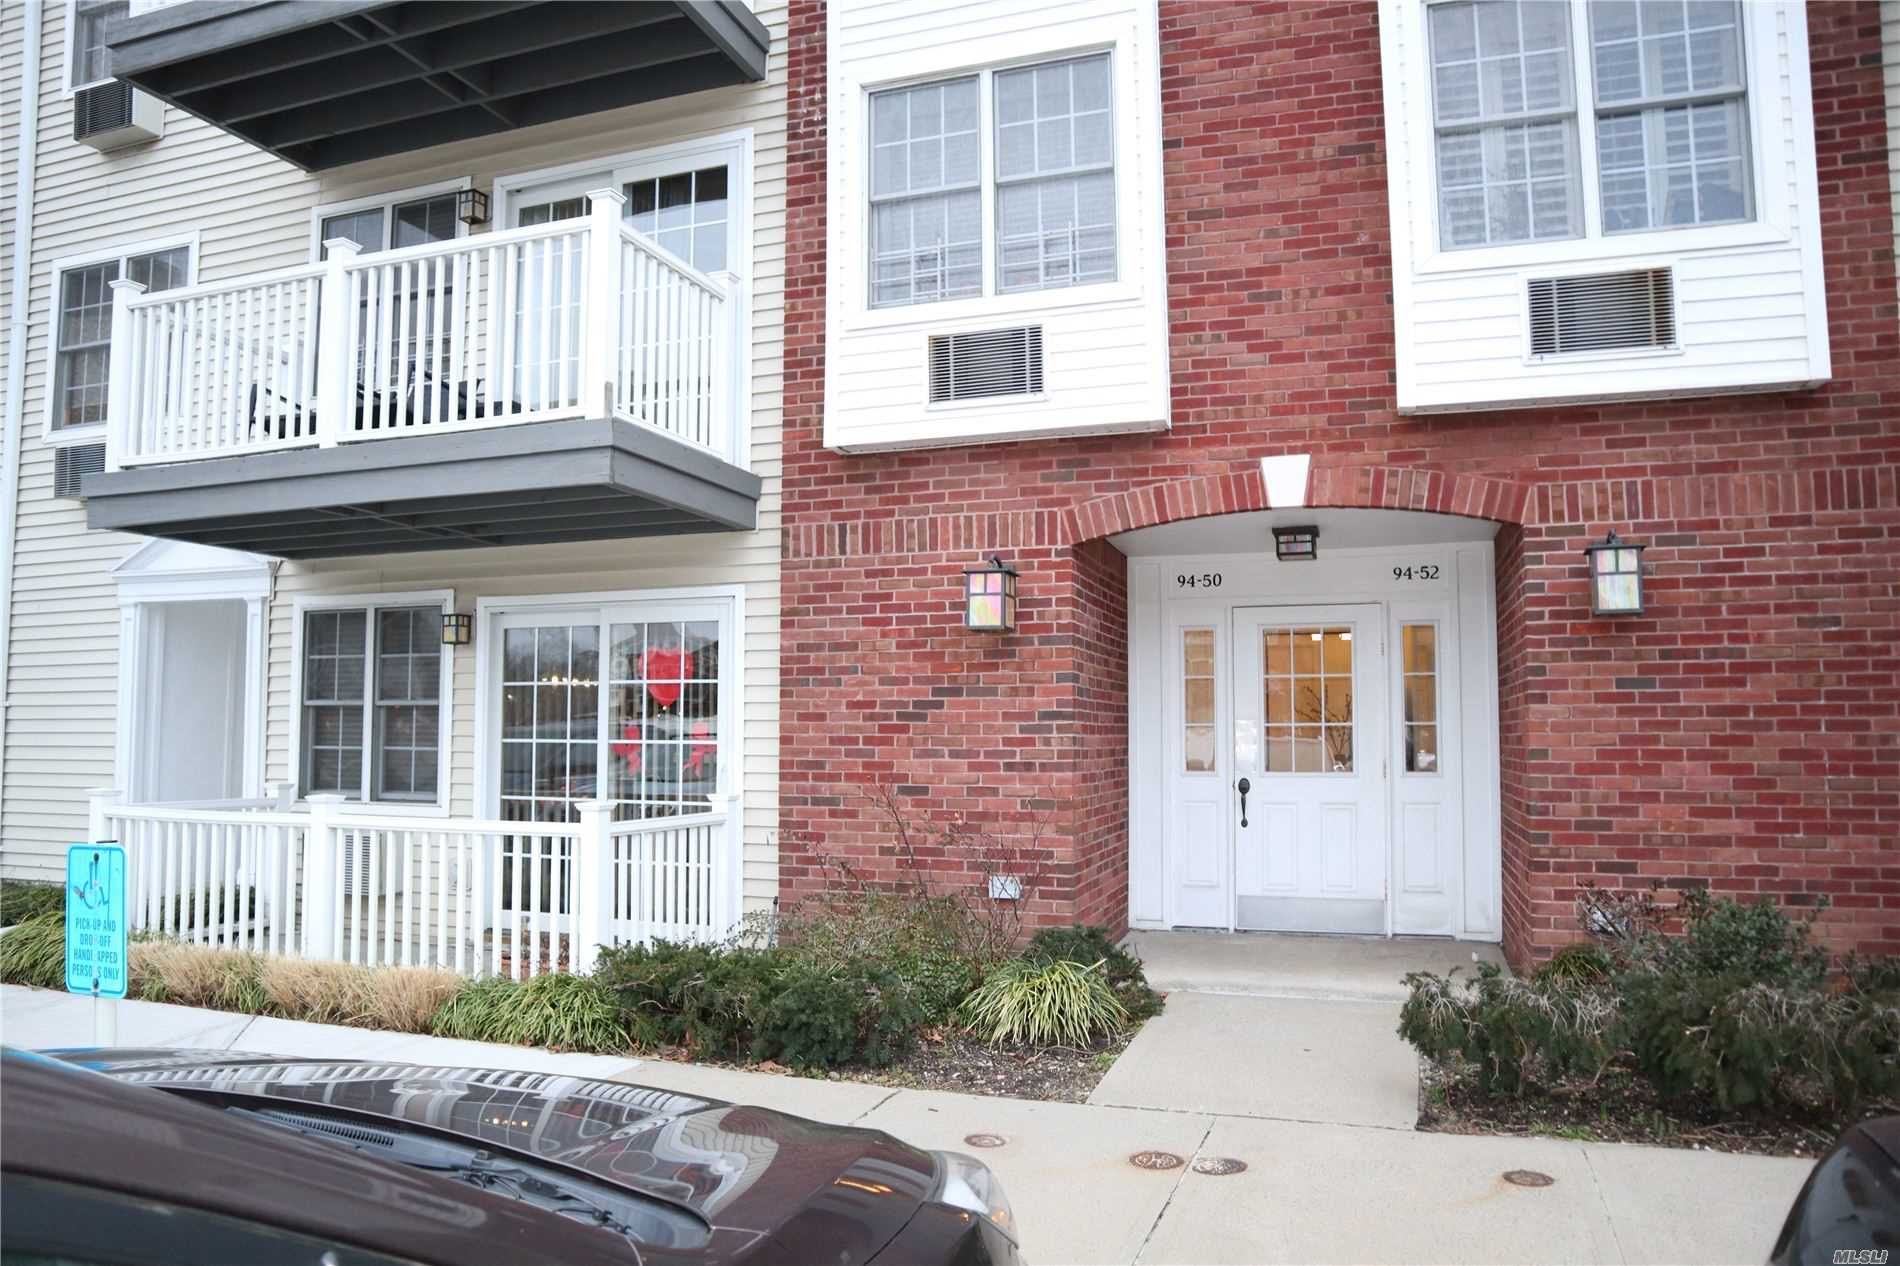 Property for sale at 94-50 Magnolia Court # 1A, Ozone Park NY 11417, Ozone Park,  New York 11417